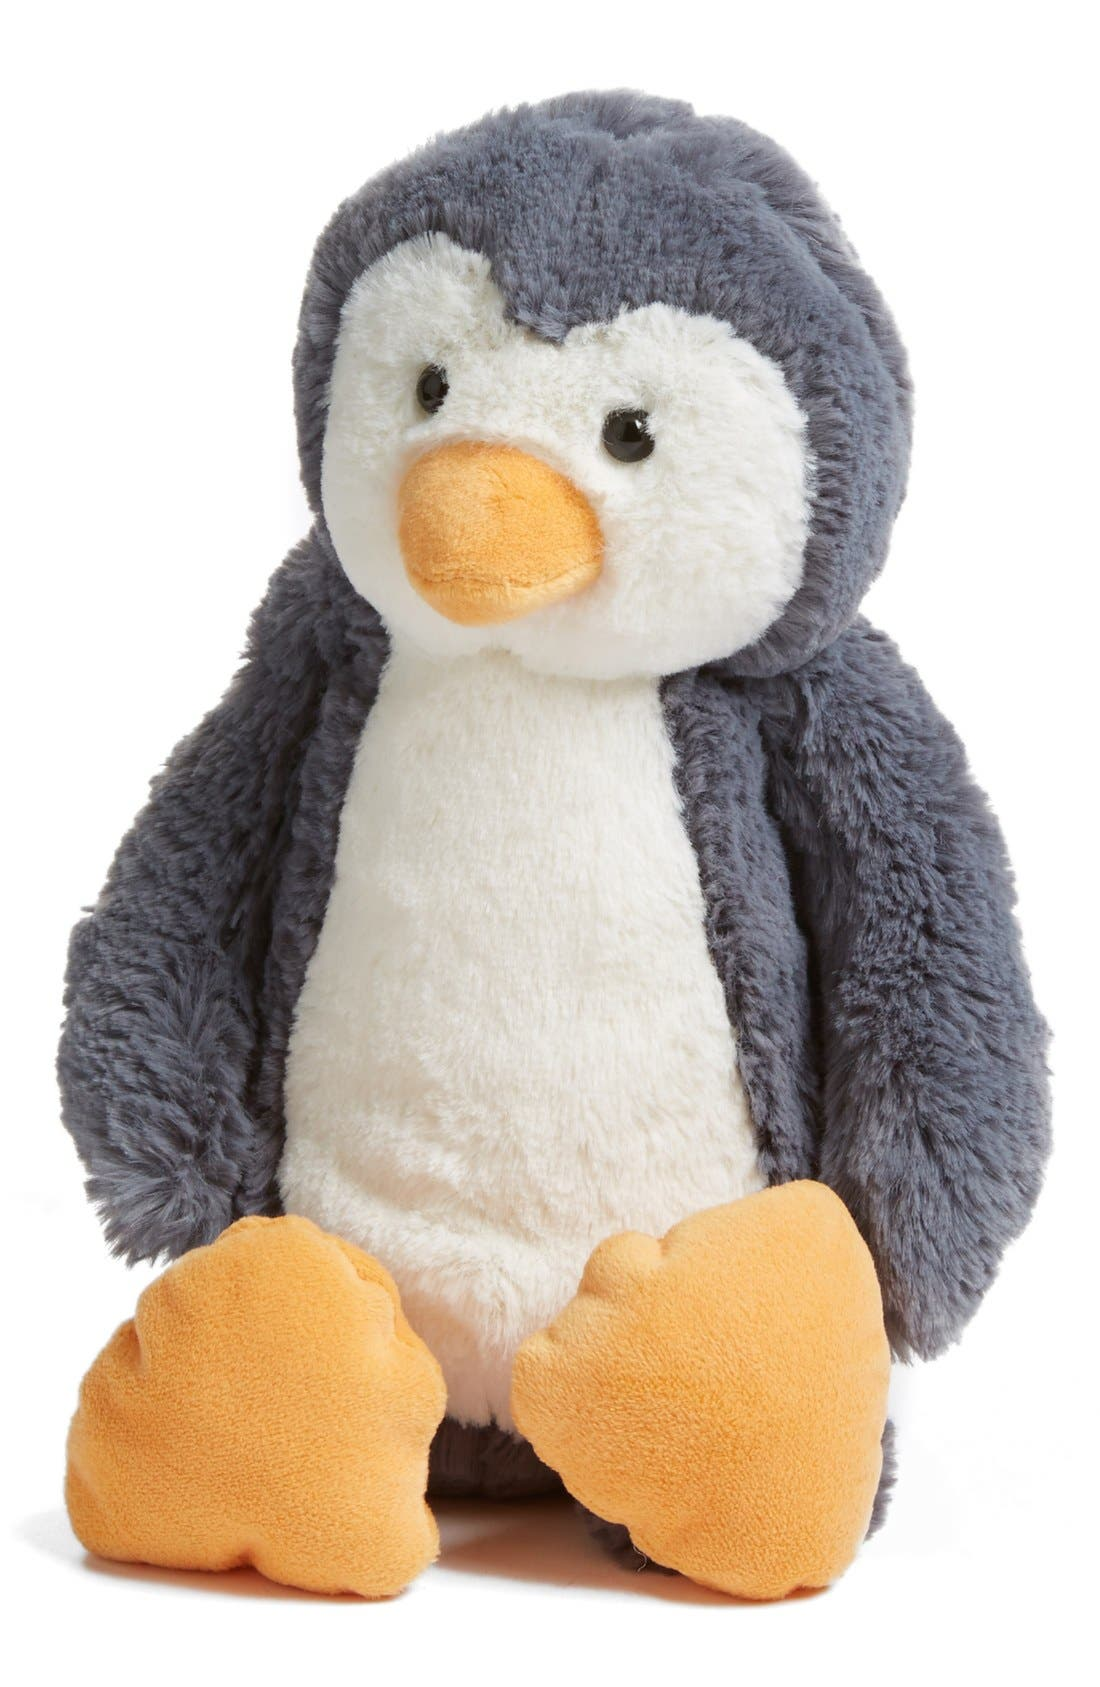 Alternate Image 1 Selected - Jellycat 'Bashful Penguin' Stuffed Animal